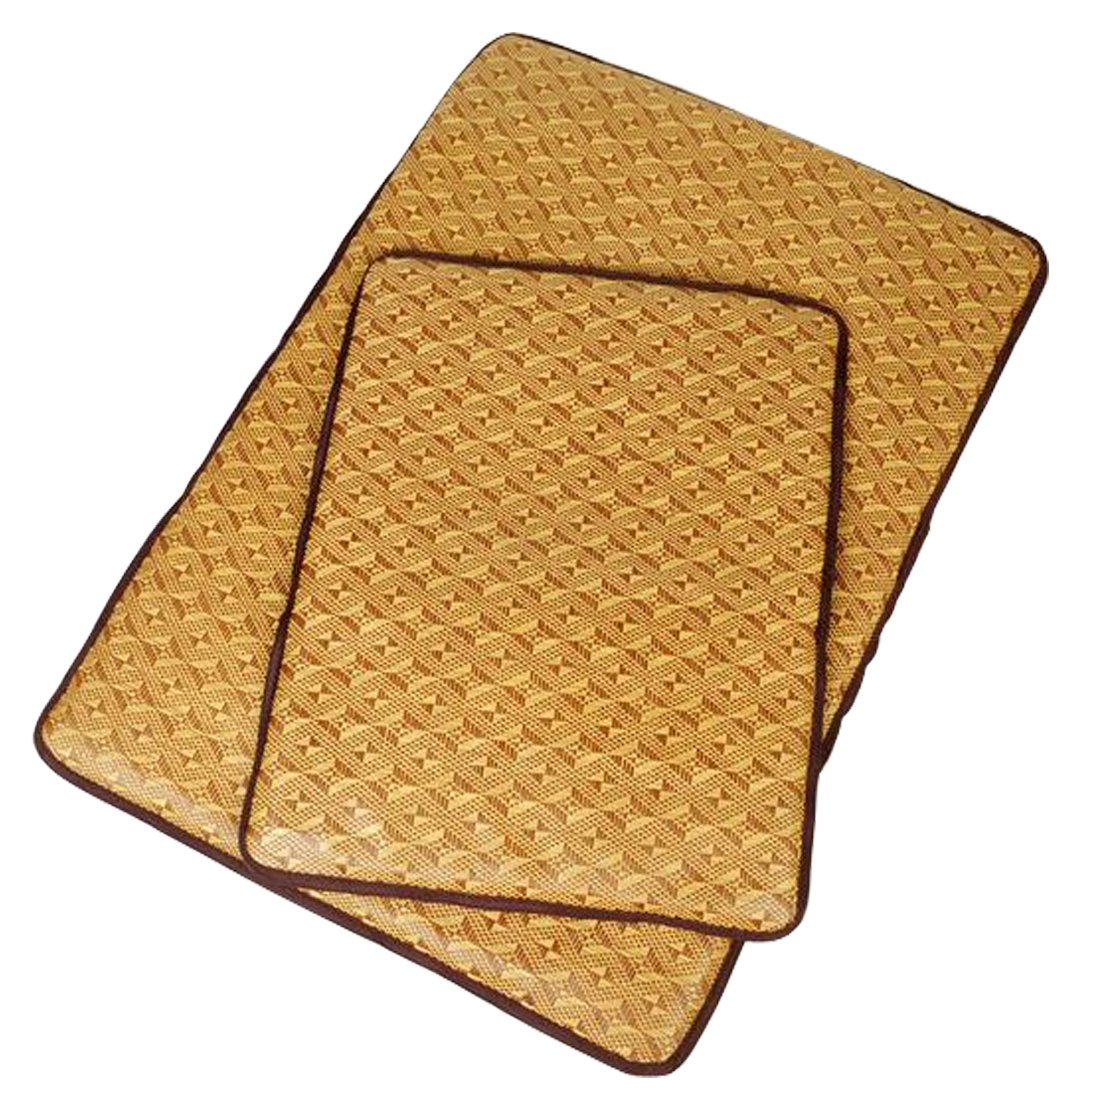 Glield Summer Breathable Bamboo Mat, Cooling Mat Bed for Dogs and Cats, Rectangle, S, M, L Size PD02 (M (70cm 50cm))